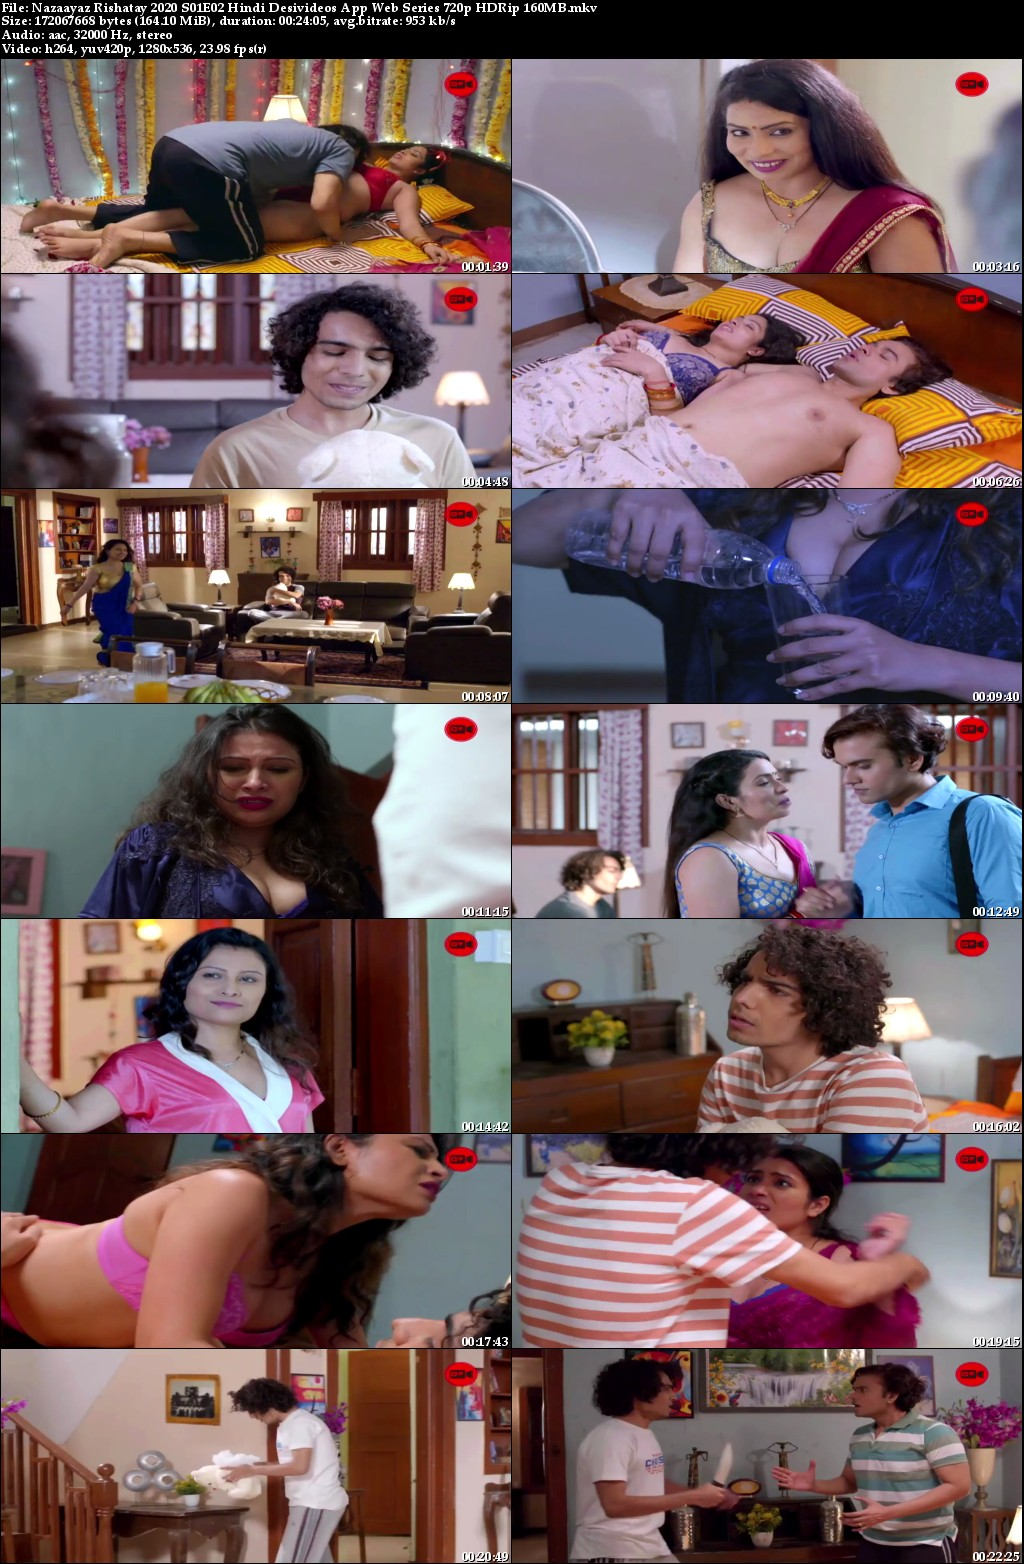 Nazaayaz-Rishatay-2020-S01-E02-Hindi-Desivideos-App-Web-Series-720p-HDRip-160-MB